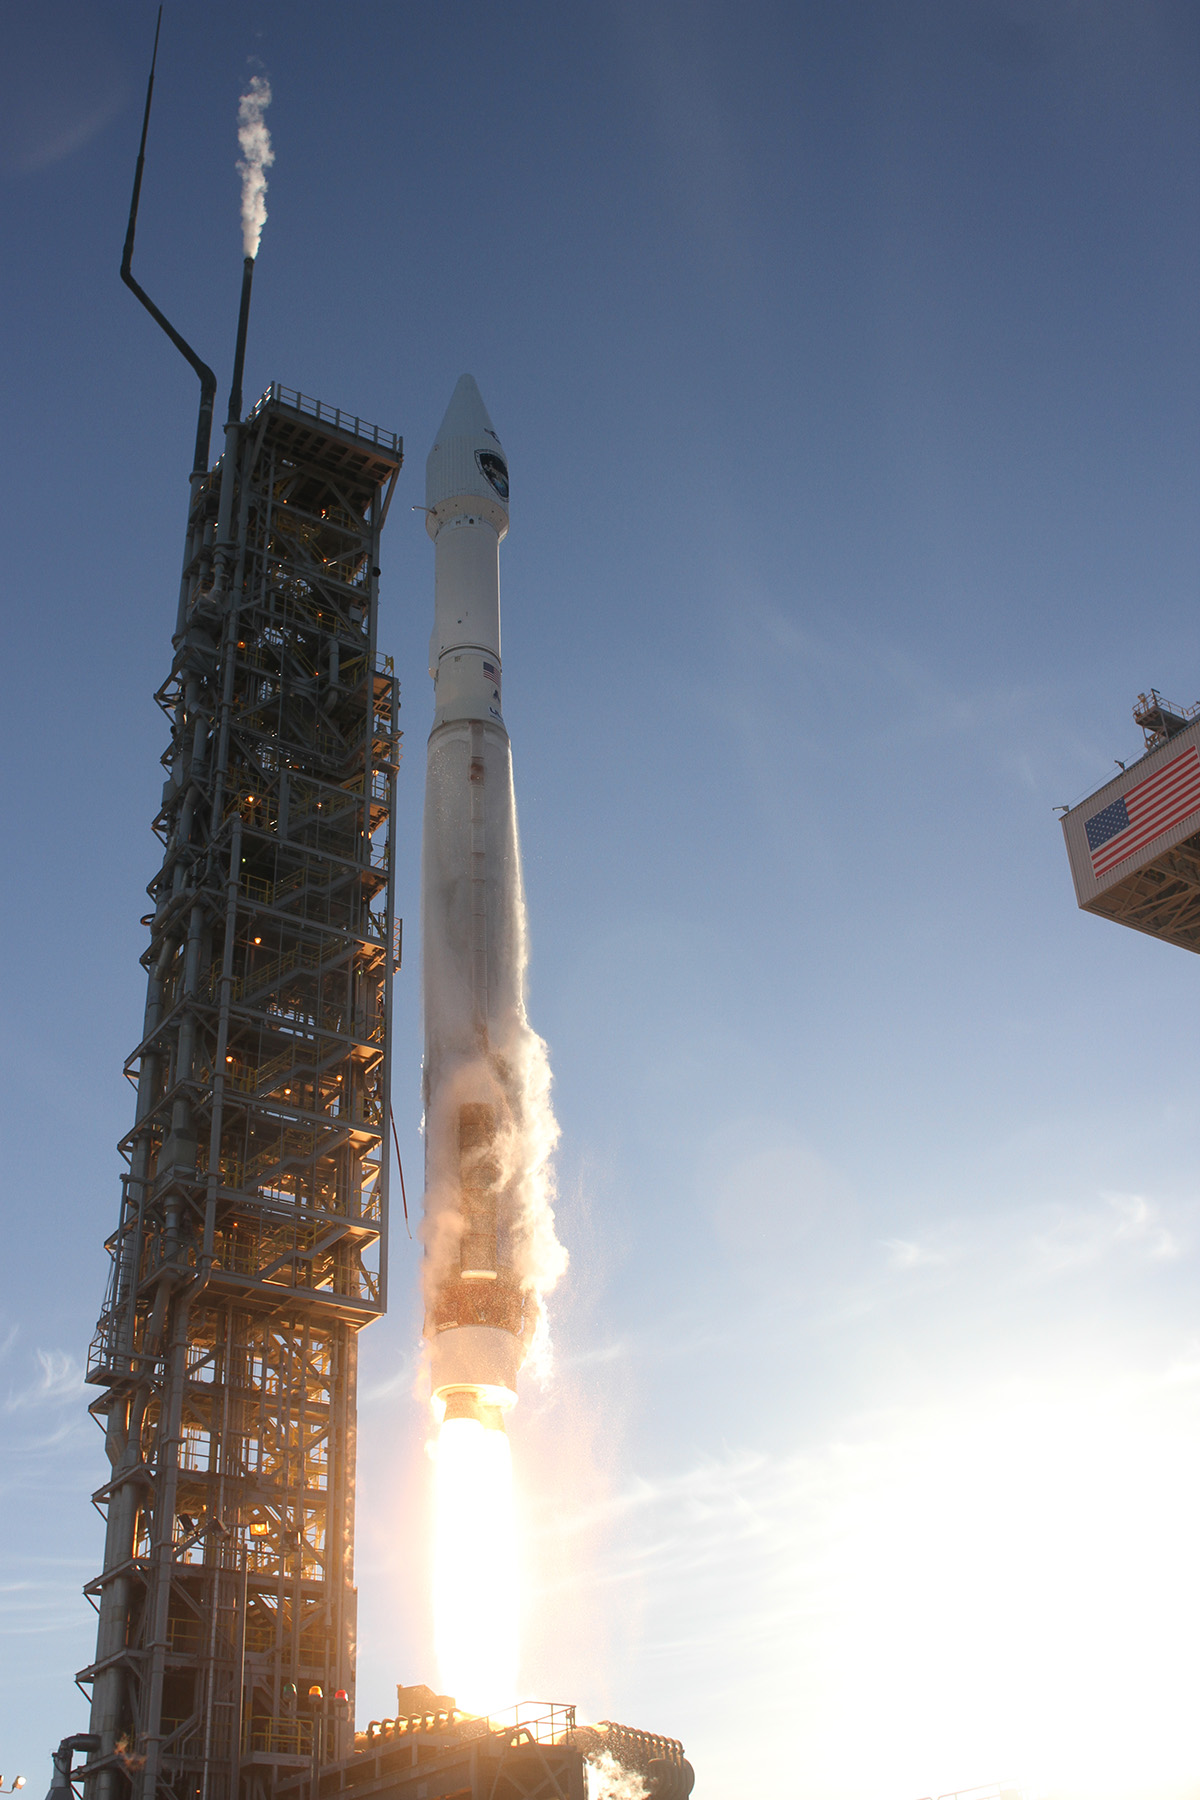 US Air Force Launches New Weather Satellite Into Orbit